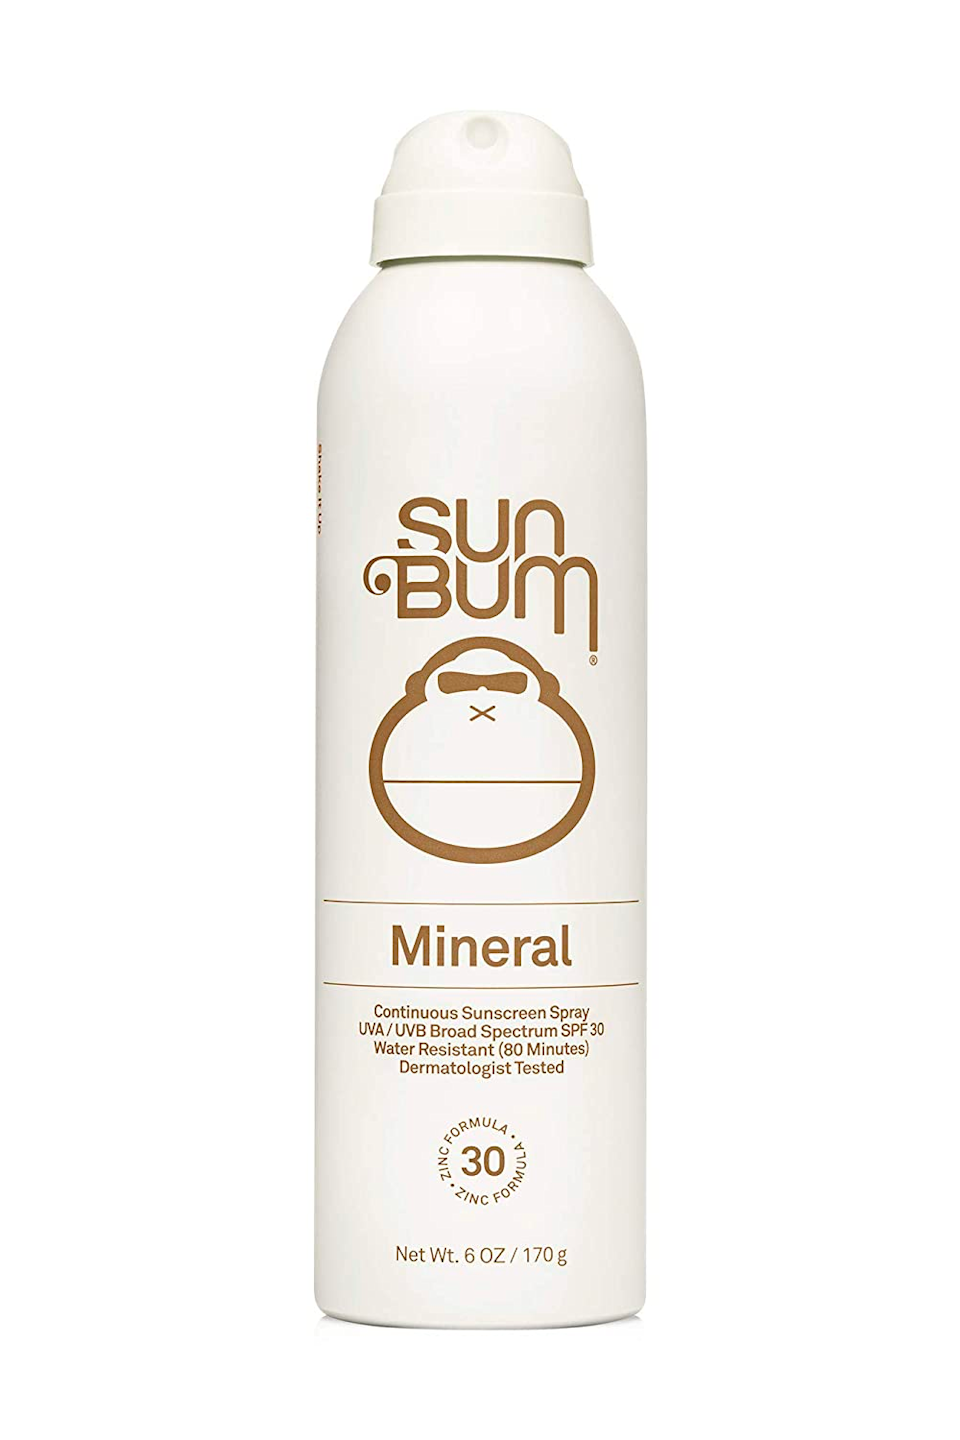 """<p><strong>Sun Bum</strong></p><p>amazon.com</p><p><strong>$16.43</strong></p><p><a href=""""https://www.amazon.com/dp/B072QYMP4F?tag=syn-yahoo-20&ascsubtag=%5Bartid%7C10049.g.35993297%5Bsrc%7Cyahoo-us"""" rel=""""nofollow noopener"""" target=""""_blank"""" data-ylk=""""slk:Shop Now"""" class=""""link rapid-noclick-resp"""">Shop Now</a></p><p>Speaking of easy application, <a href=""""https://www.cosmopolitan.com/style-beauty/beauty/g31696775/best-spray-sunscreens/"""" rel=""""nofollow noopener"""" target=""""_blank"""" data-ylk=""""slk:spray-on sunscreen"""" class=""""link rapid-noclick-resp"""">spray-on sunscreen</a> is always a great option for folks spending extended amounts of time outside (think: any beach or park days you have planned this season). This mineral formula <strong>feels soft and silky on your skin (<em>not</em> sticky or greasy)</strong> and it dries down super fast. </p>"""